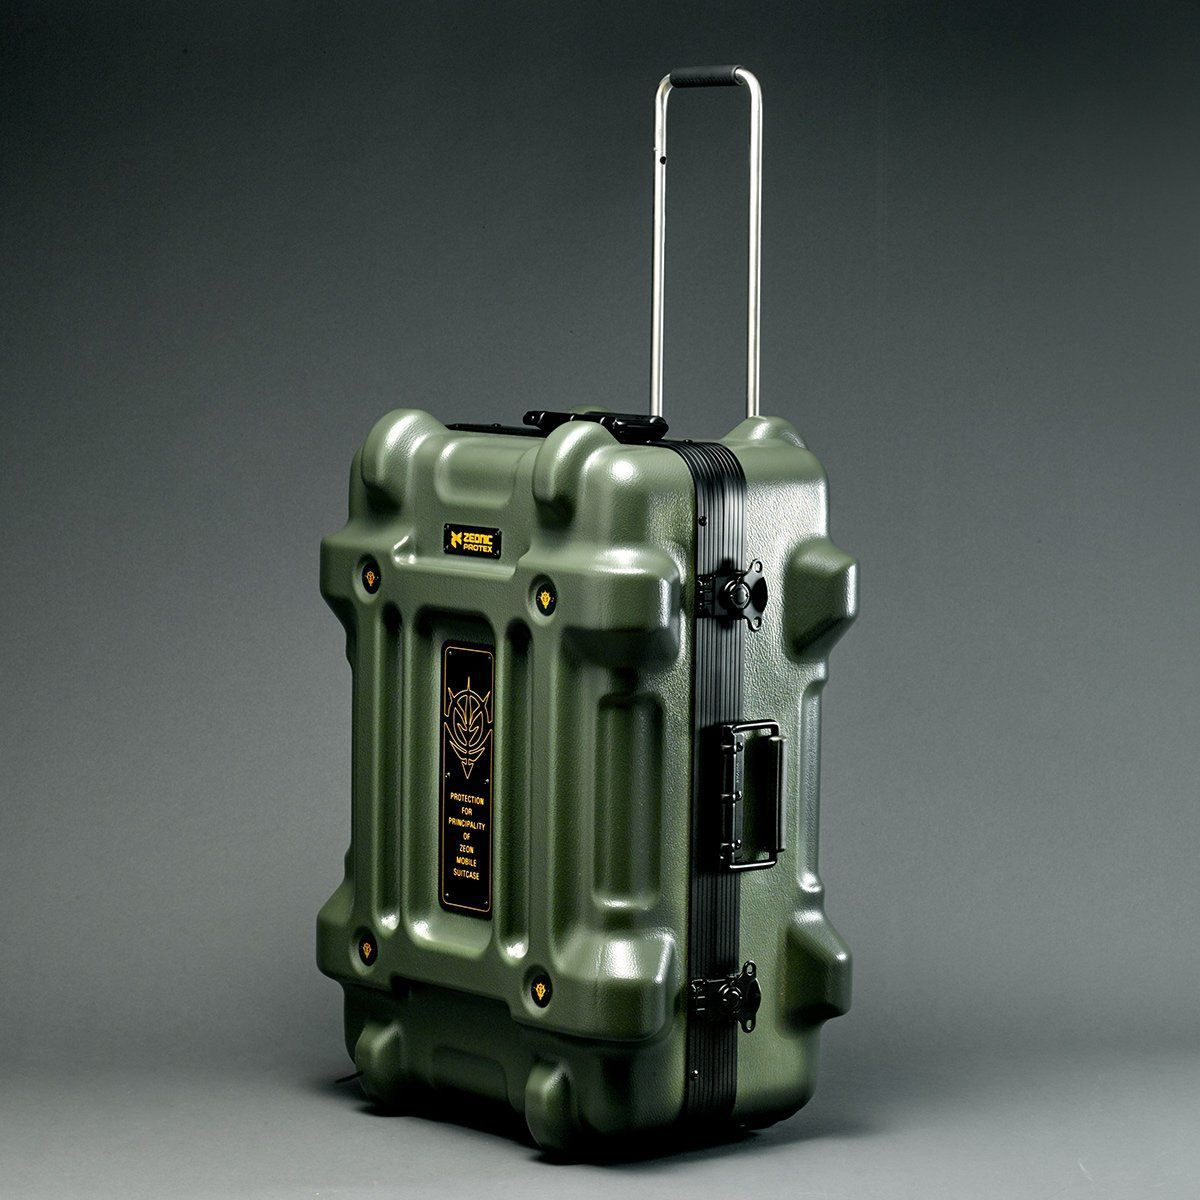 STRICT-G×PROTEX CR-4000 Luggage - Mobile Suit Gundam Principality of Zeon Version [Oct 2021 Delivery]